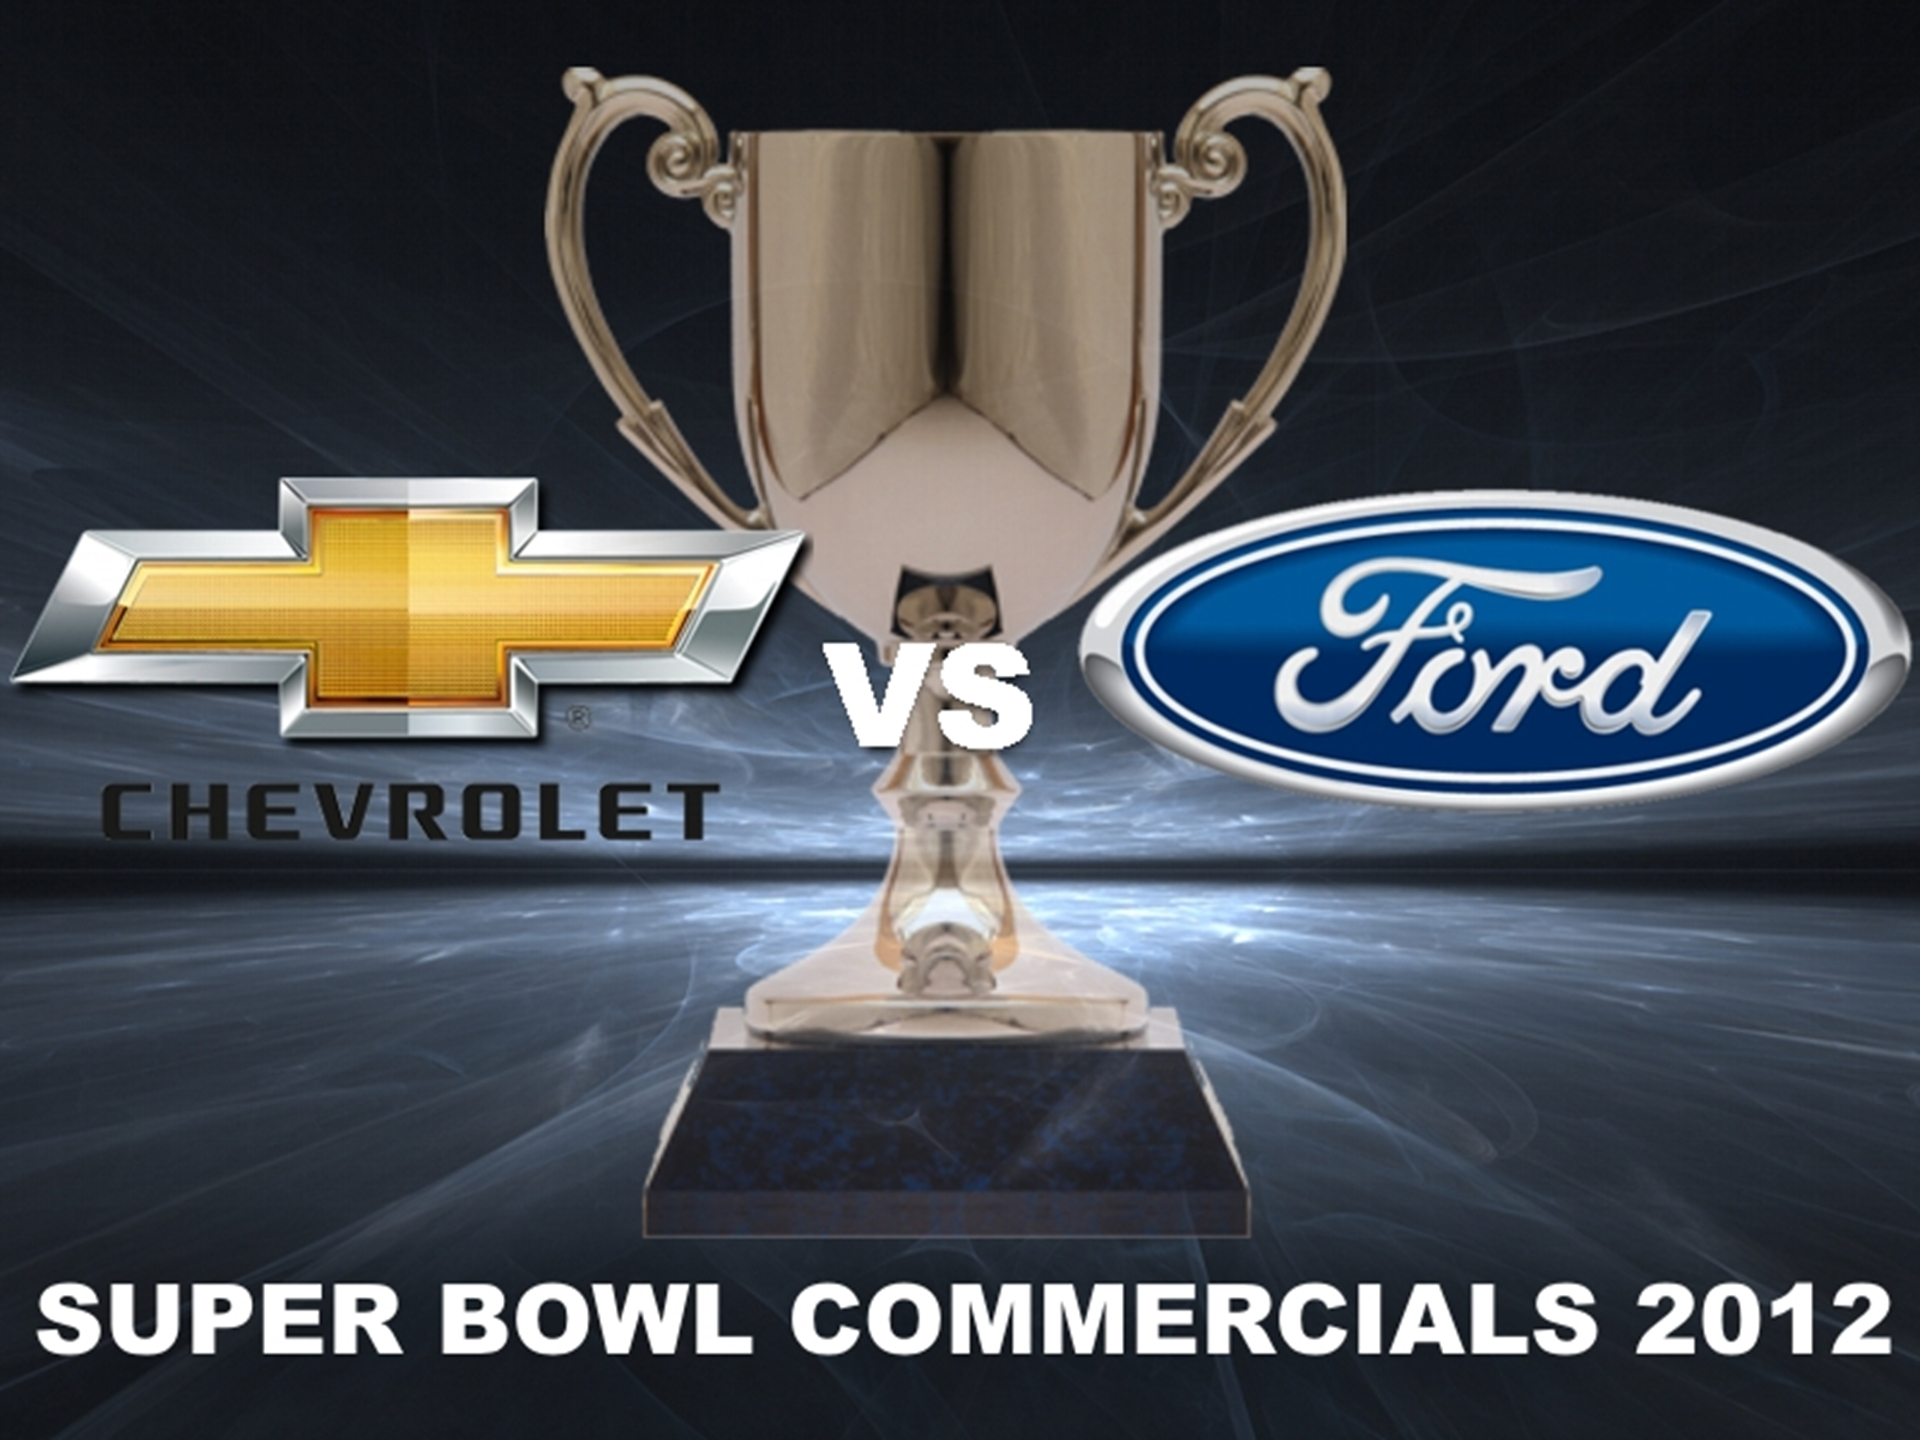 Super Bowl Commercials 2012